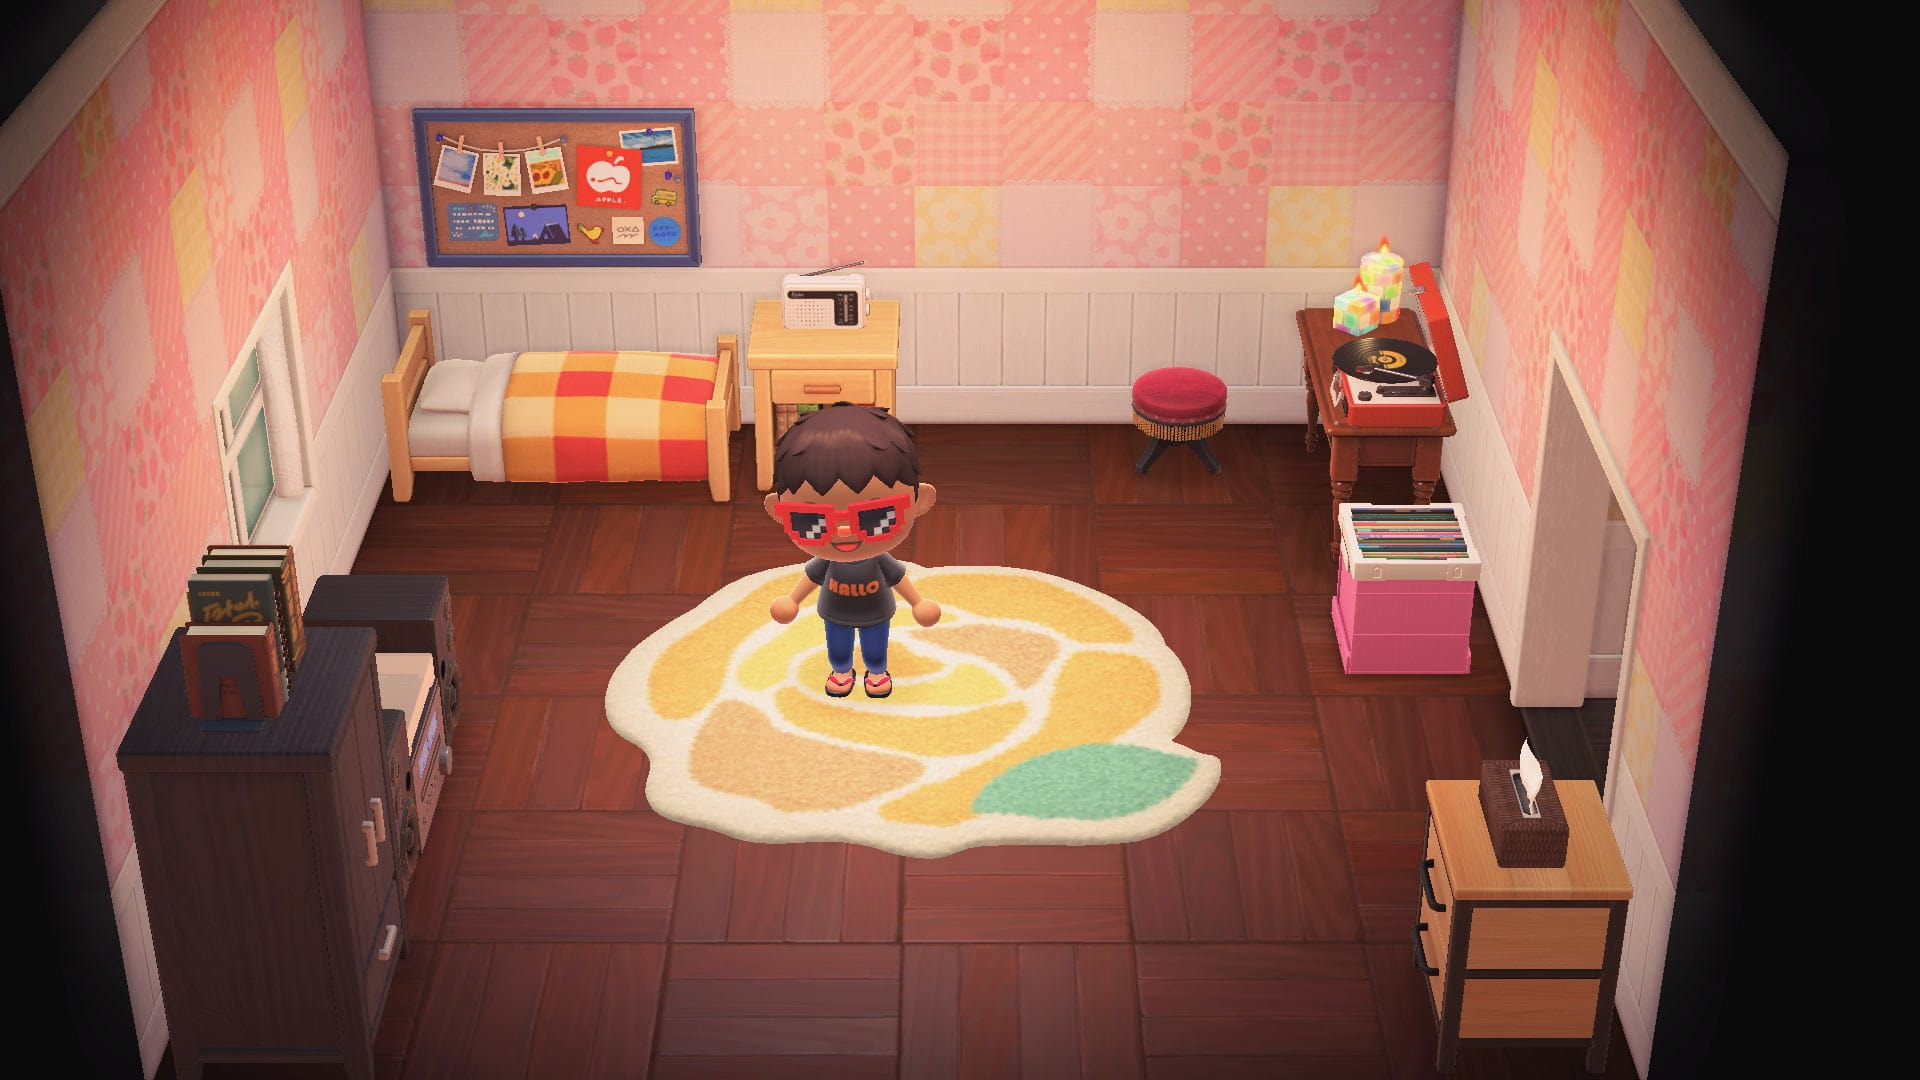 Living Room Ideas Animal Crossing New Horizons - jihanshanum on Animal Crossing Room Ideas New Horizons  id=65103